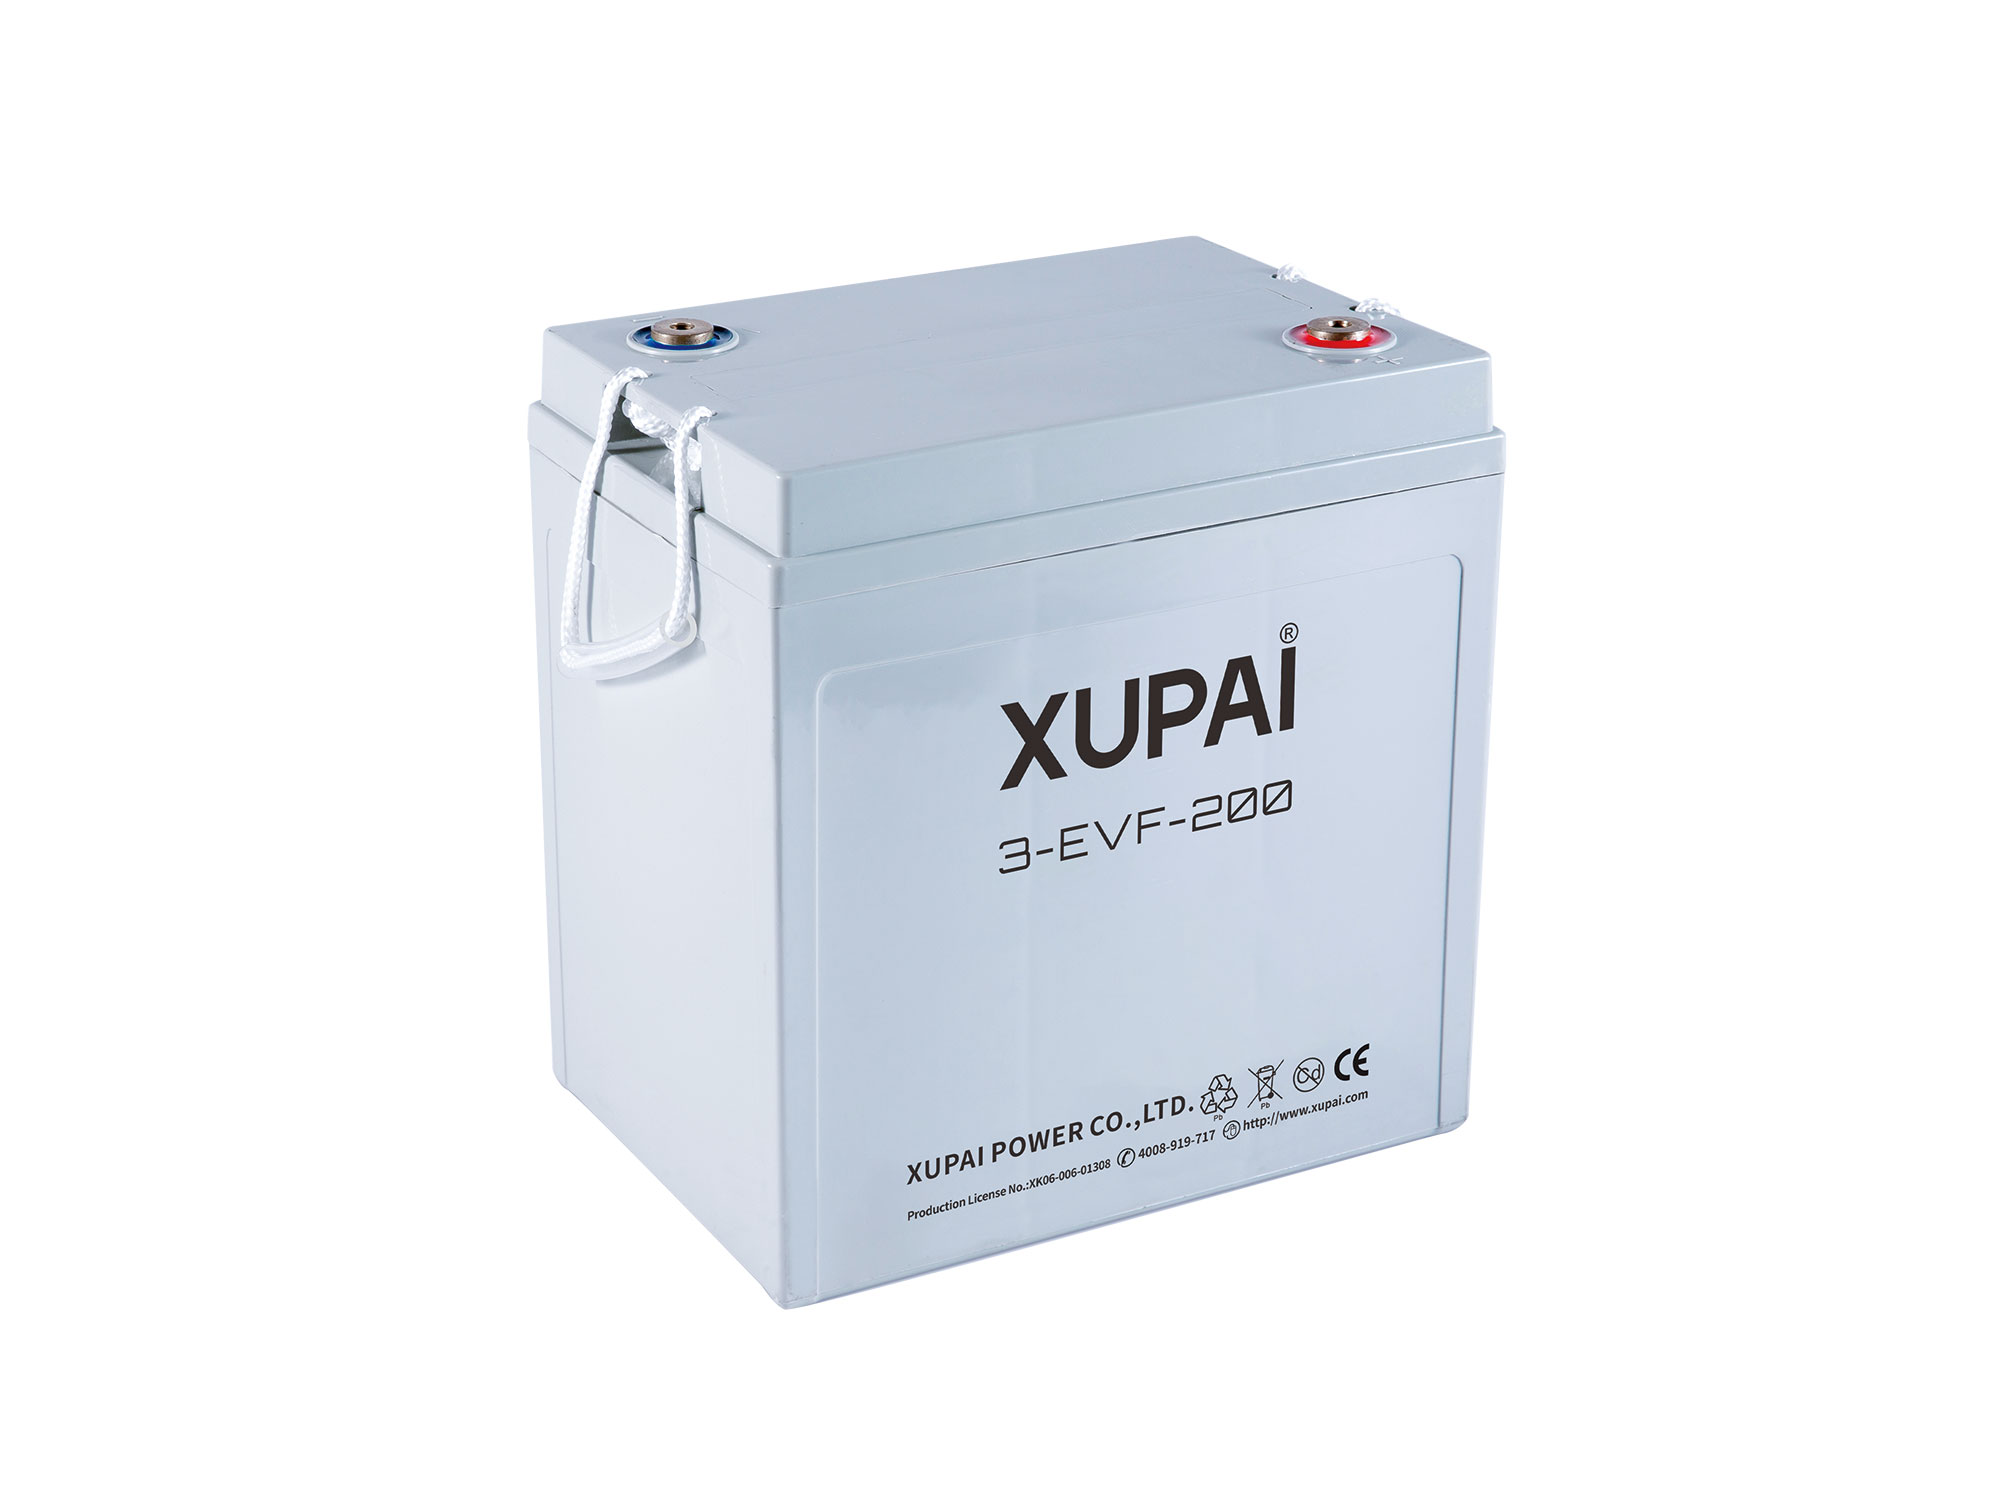 XUPAI 3-EVF-200 Lead acid batetry electric bicycle battery electric bike battery